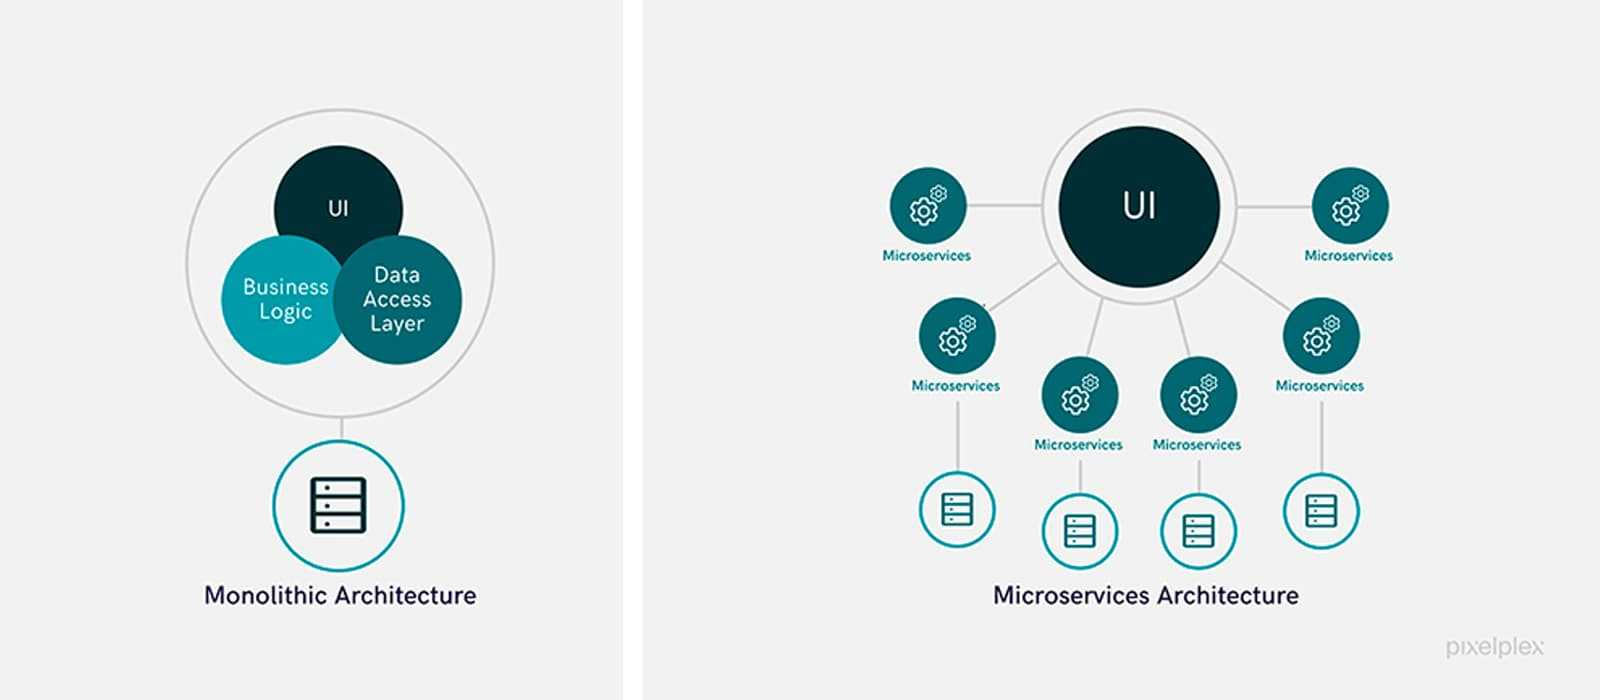 difference between monolithic architecture and microservices architecture